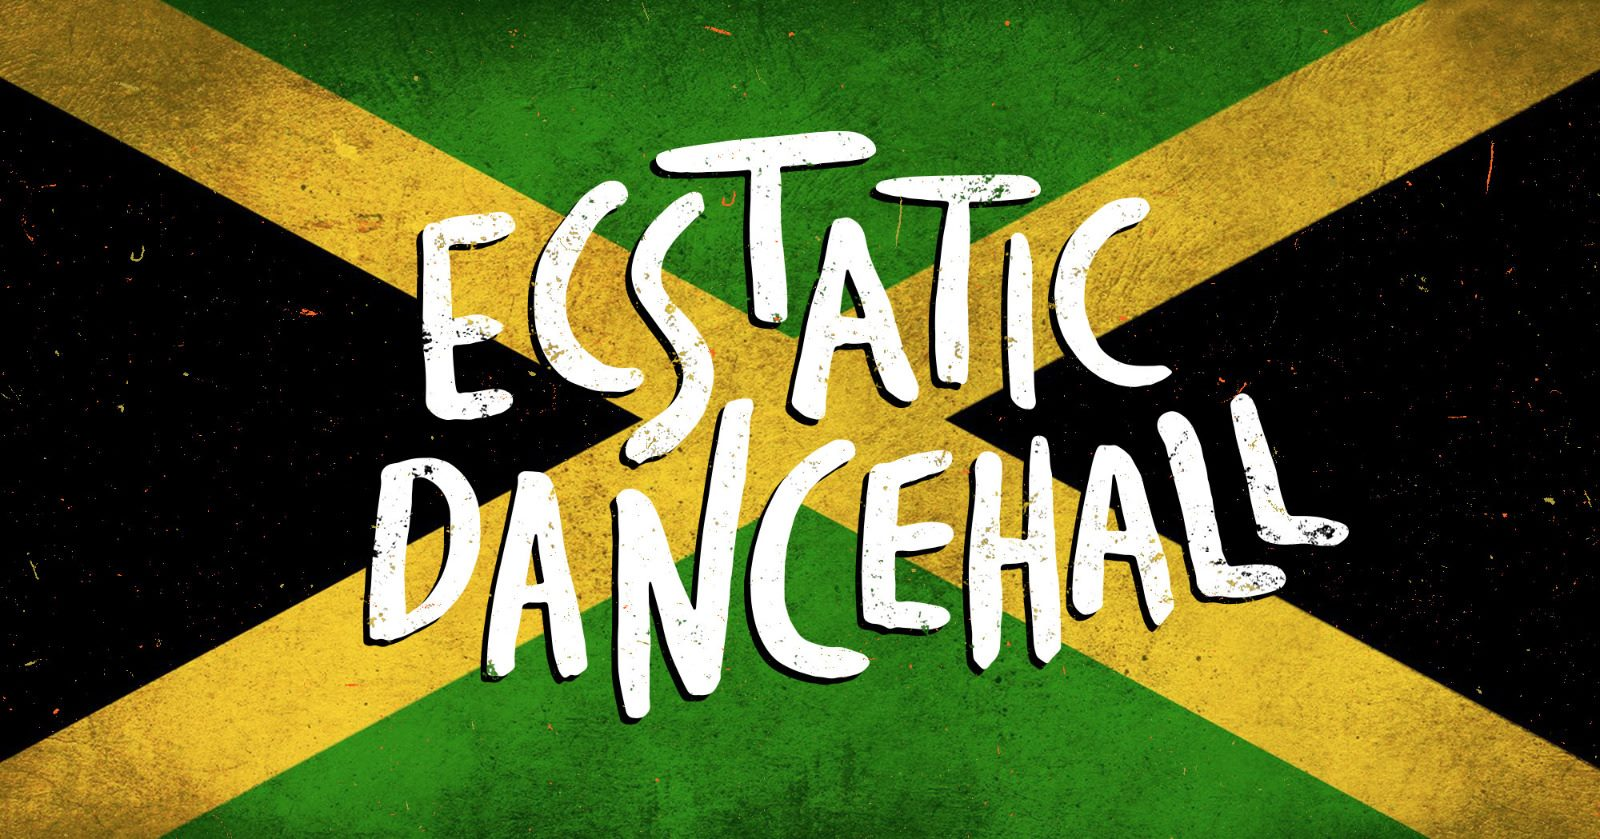 ecstatic dancehall